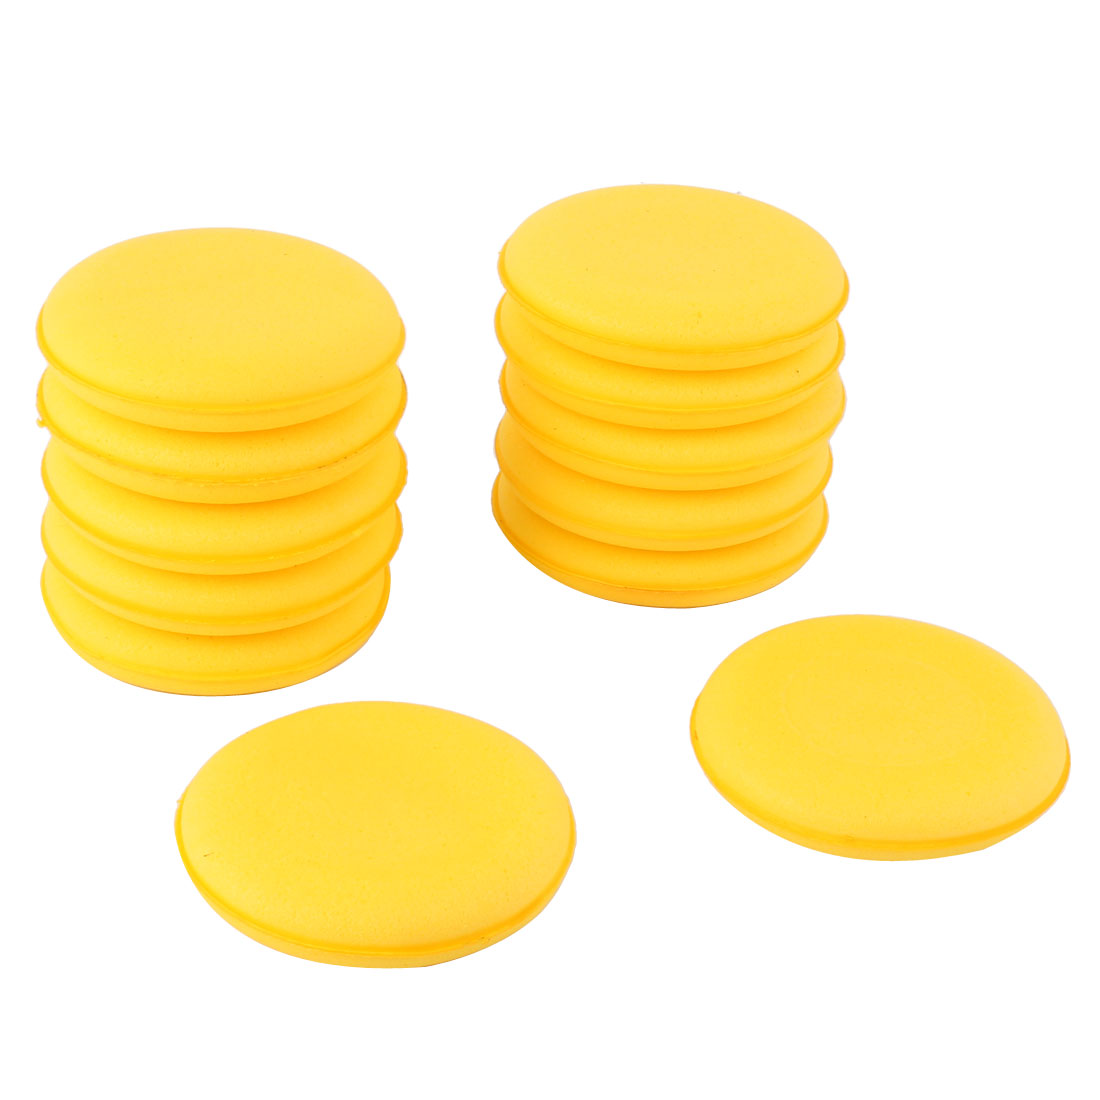 Auto Car Round Shaped Washing Sponge Cleaning Brush Pad Yellow 12 Pcs